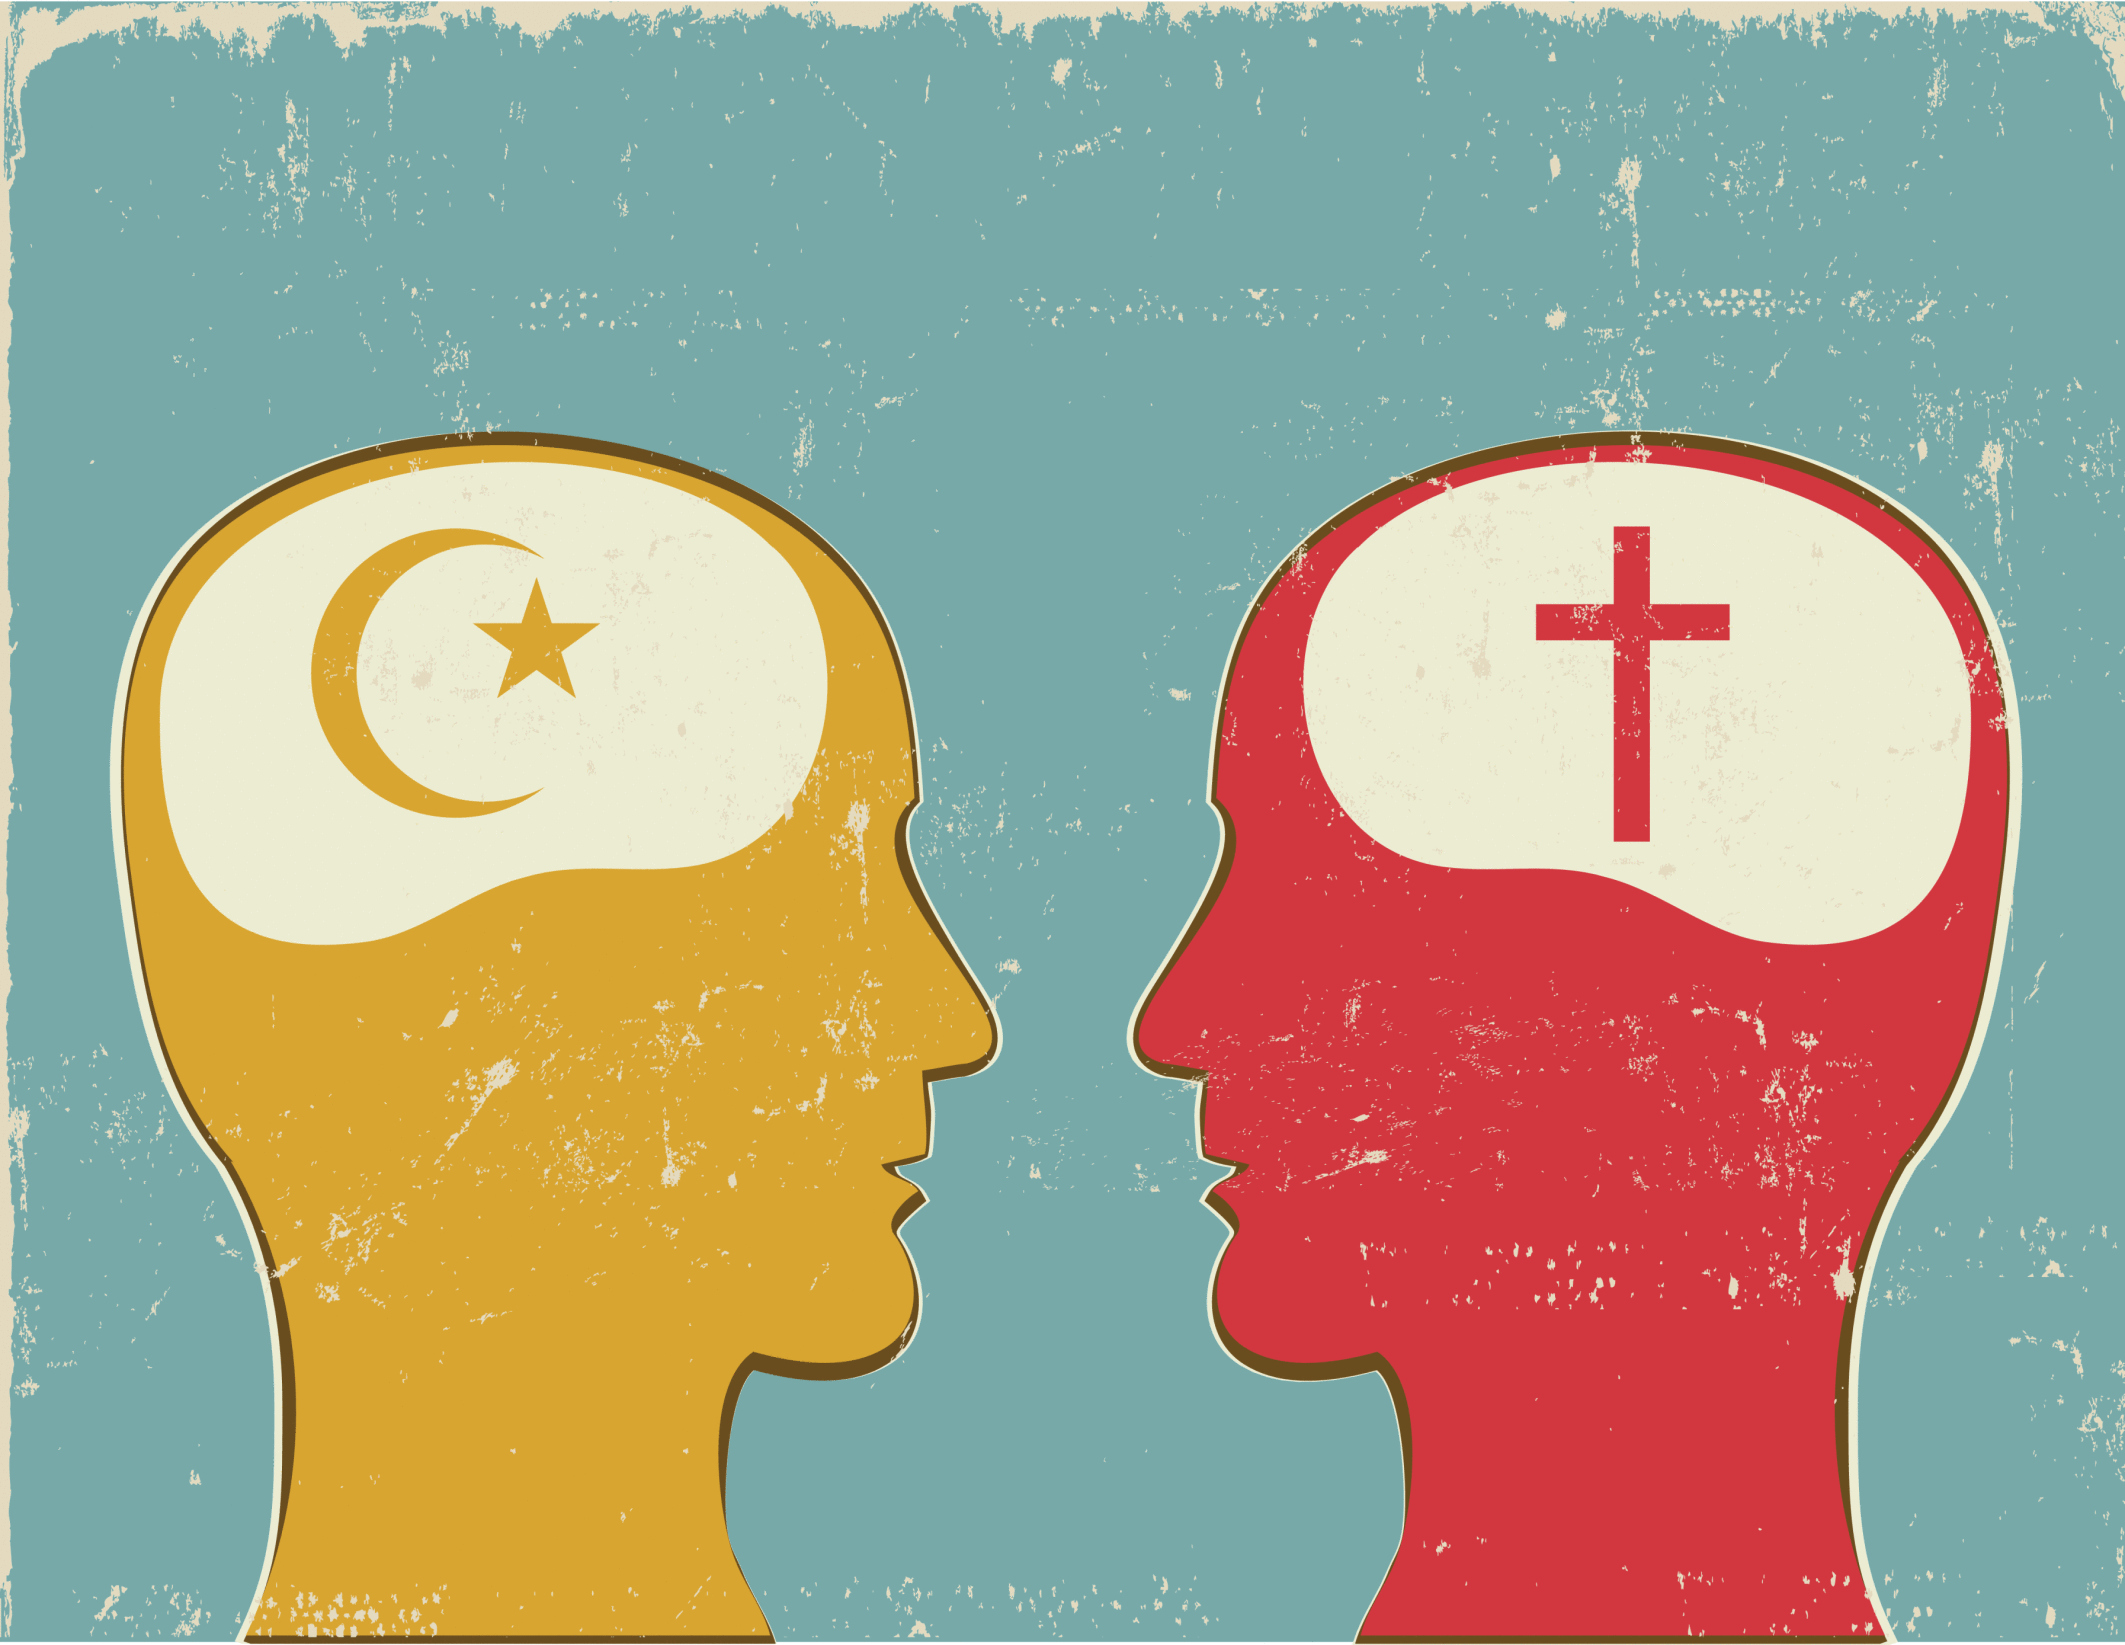 Profiles with Christian and Islamic symbols